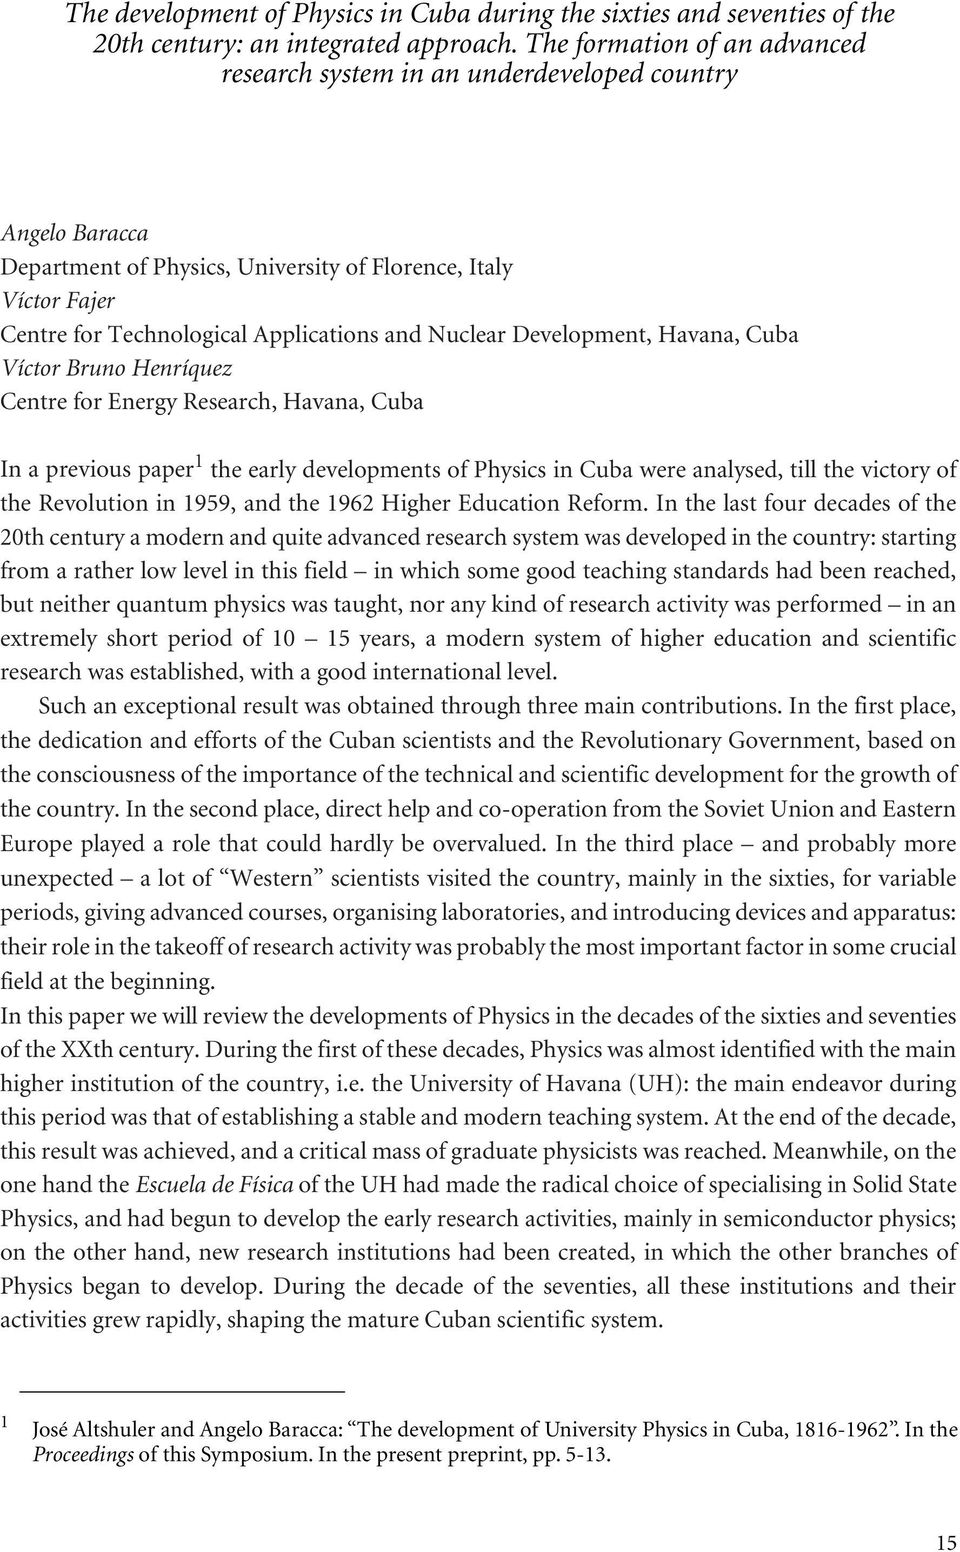 Nuclear Development, Havana, Cuba Víctor Bruno Henríquez Centre for Energy Research, Havana, Cuba In a previous paper 1 the early developments of Physics in Cuba were analysed, till the victory of